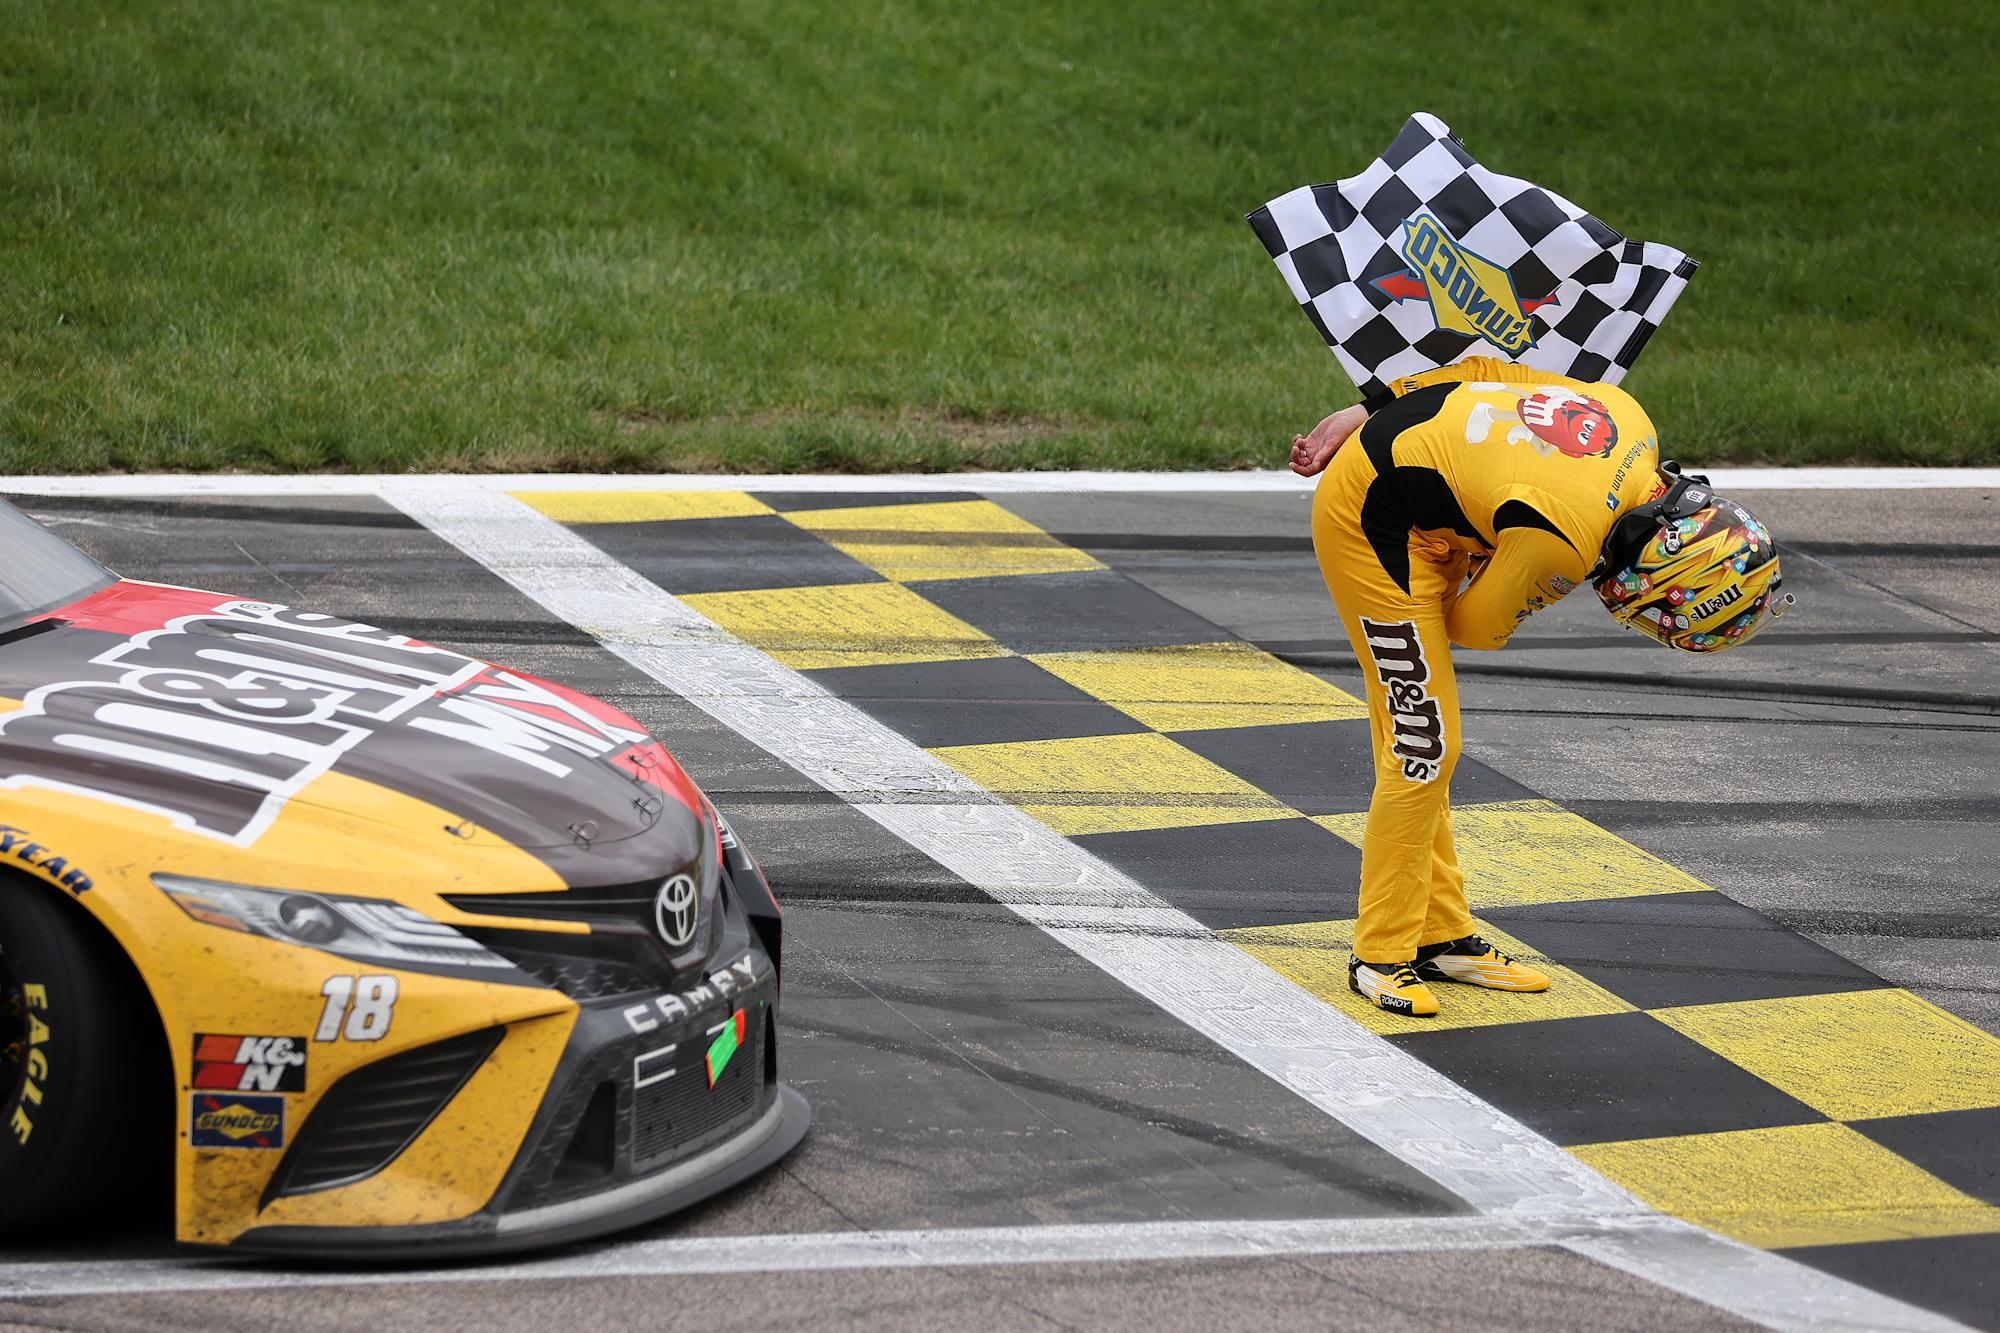 Kyle Busch wins race sponsored by Busch on his birthday at Kansas – Yahoo Sports